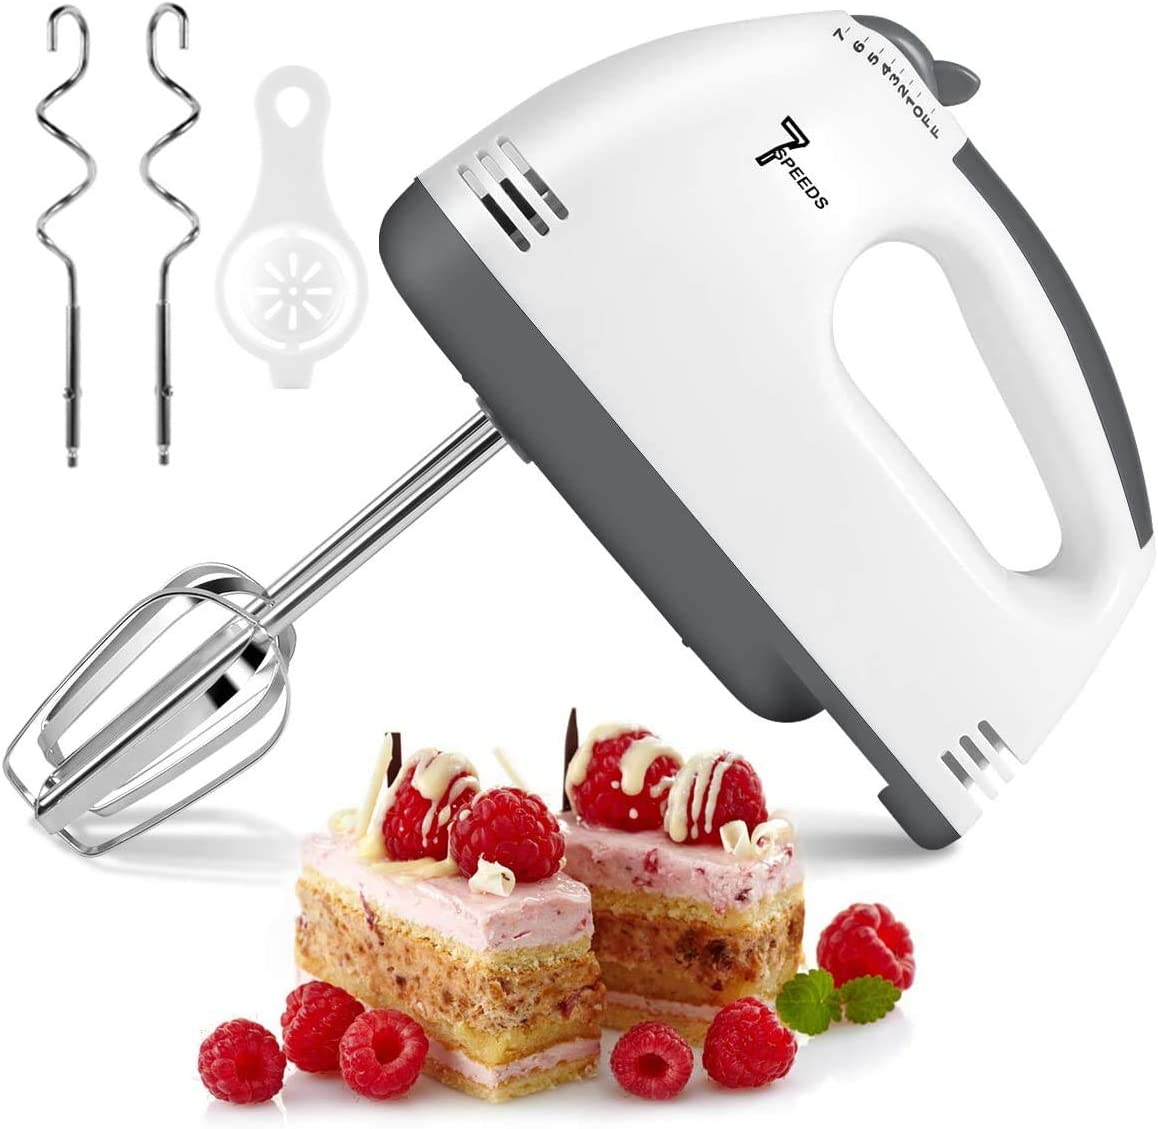 Hand Mixer Electric, 2021 7-Speeds Lightweight Powerful Handheld Electric Mixer, Portable Kitchen Mixer Stainless Steel Egg Whisk with Egg White Separator, Egg Sticks + Dough Sticks for Baking, Cakes